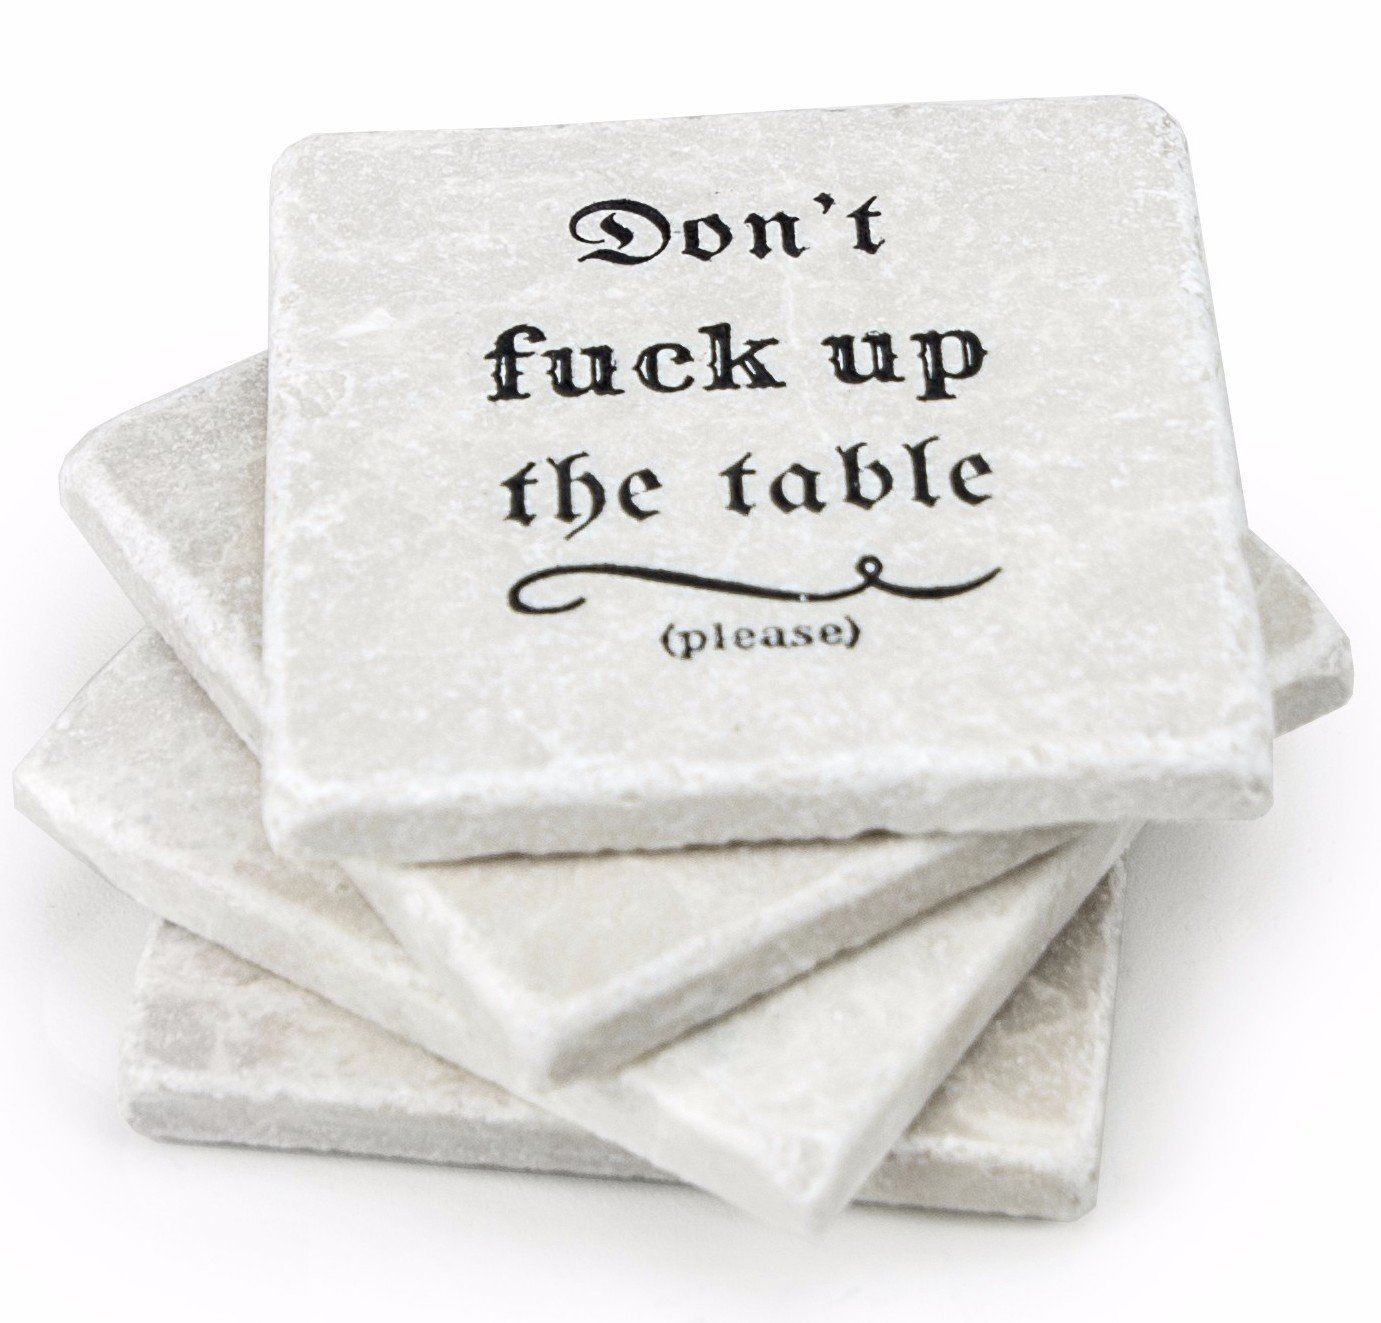 Marble Coasters for Drinks - Housewarming Gift, Funny Home, Kitchen, Living Room, Coffee Table, or Bar Decoration